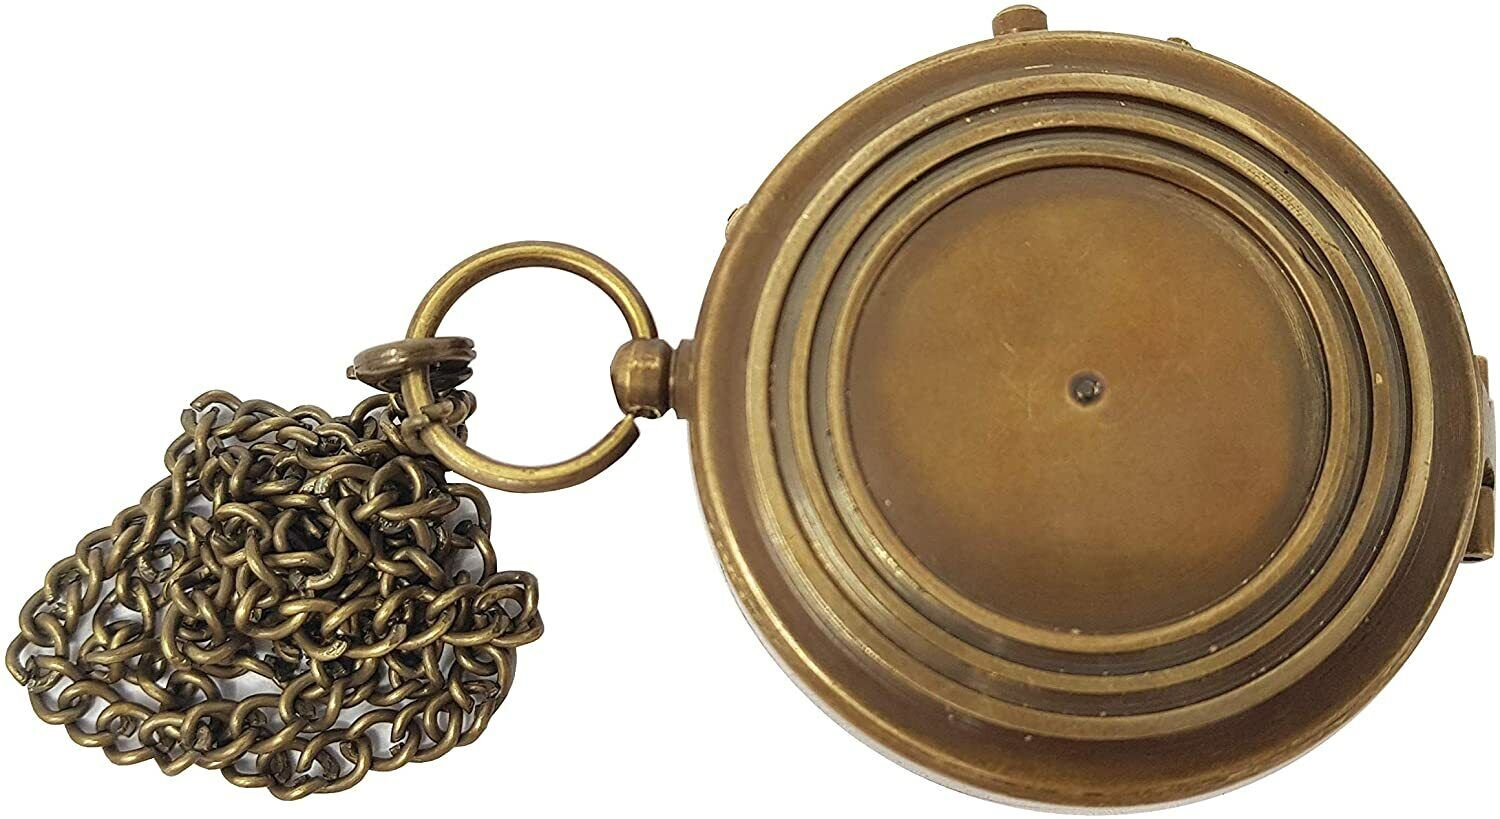 Antique Brass Compass Nautical Pocket Backpacking Compass Leather Case Vintage